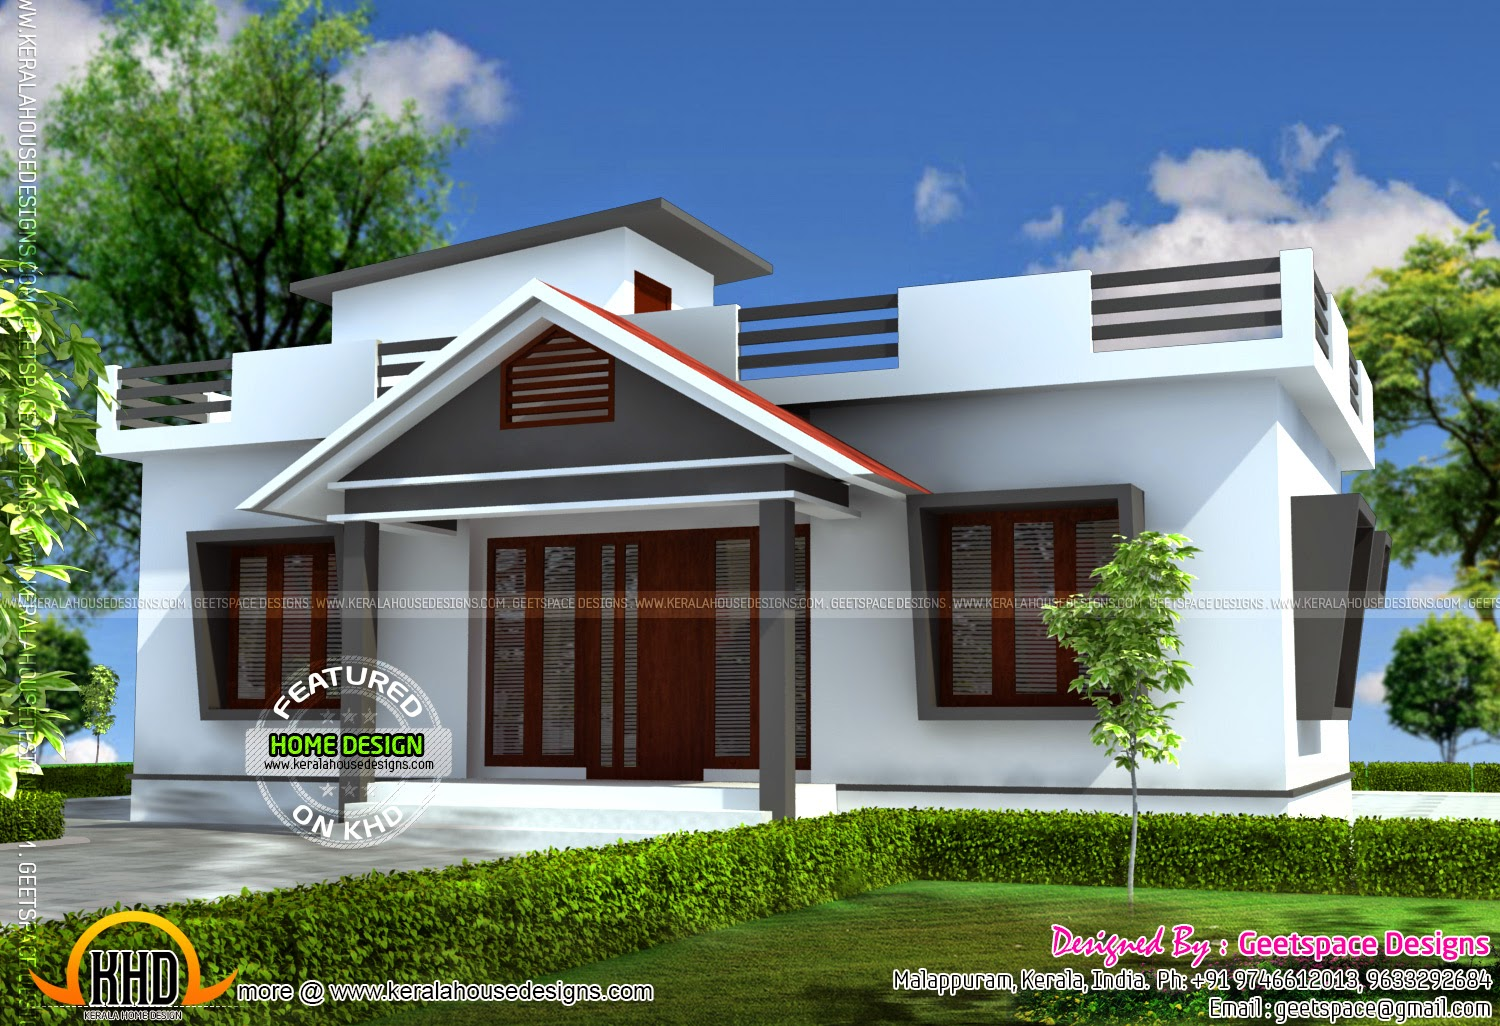 Small budget home plans design kerala joy studio design gallery best design Low budget home design ideas